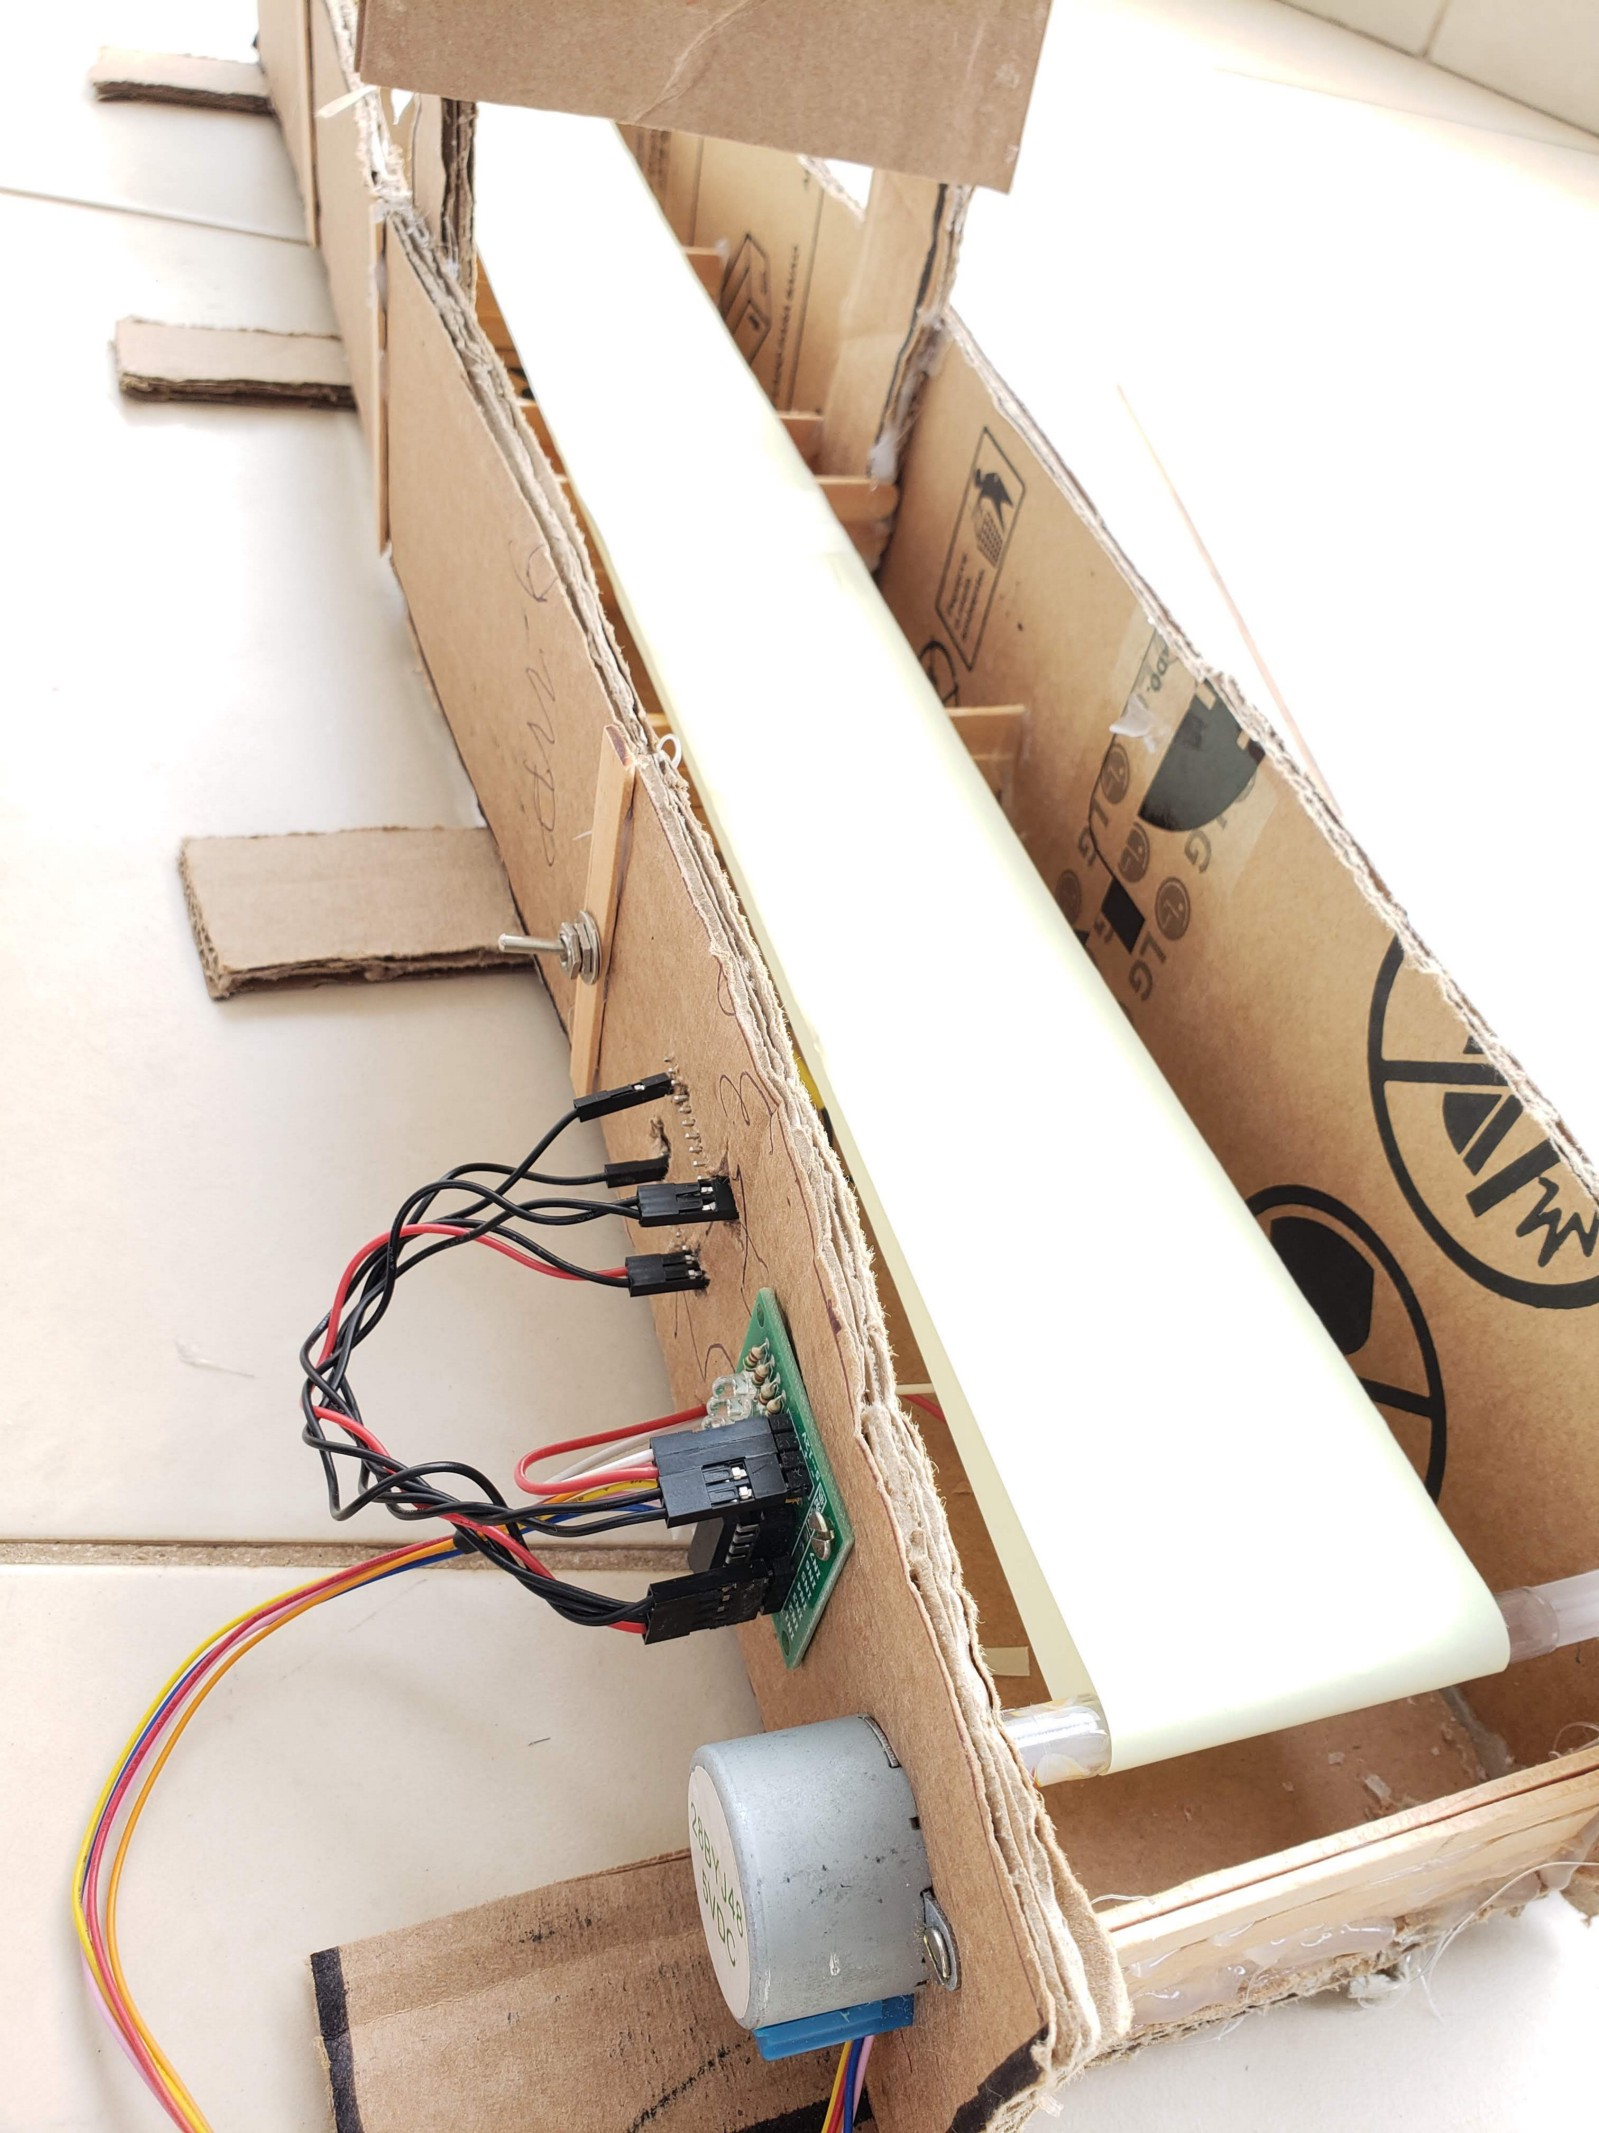 I used: Cardboard, board for ULN2003 and 28BYJ-48 5v Stepper Motor, Thermal Printer Paper Rolls, Arduino Pro Mini, and hot glue.